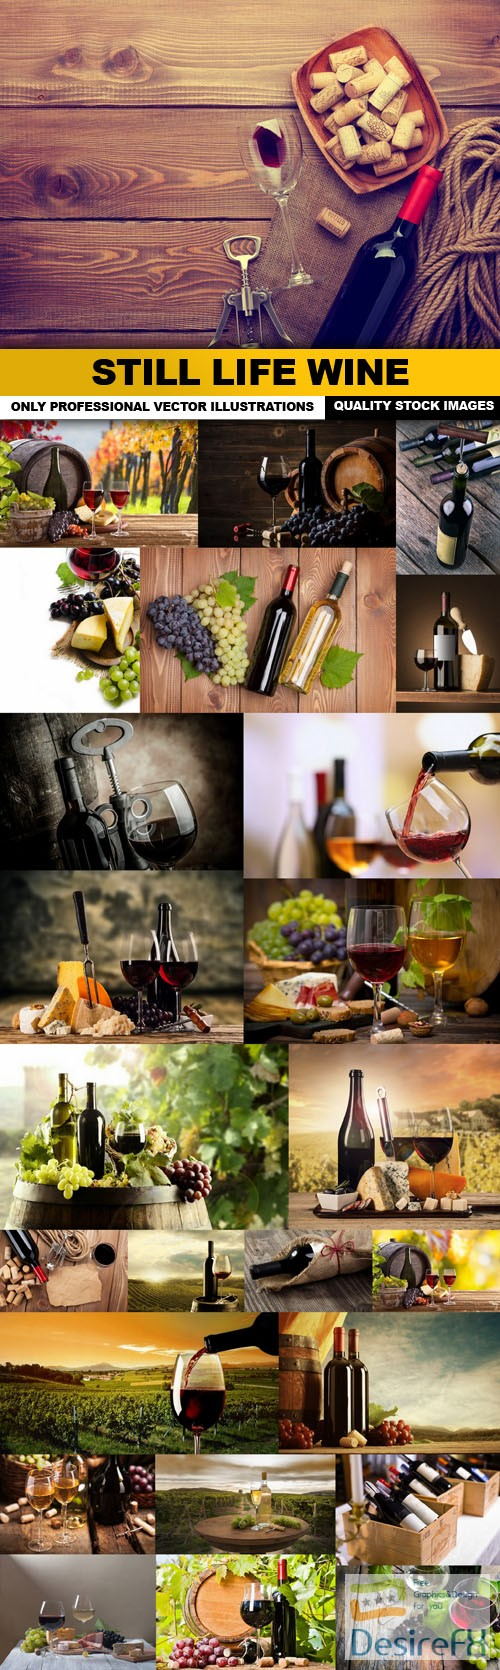 stock-images - Still Life Wine - 25 HQ Images